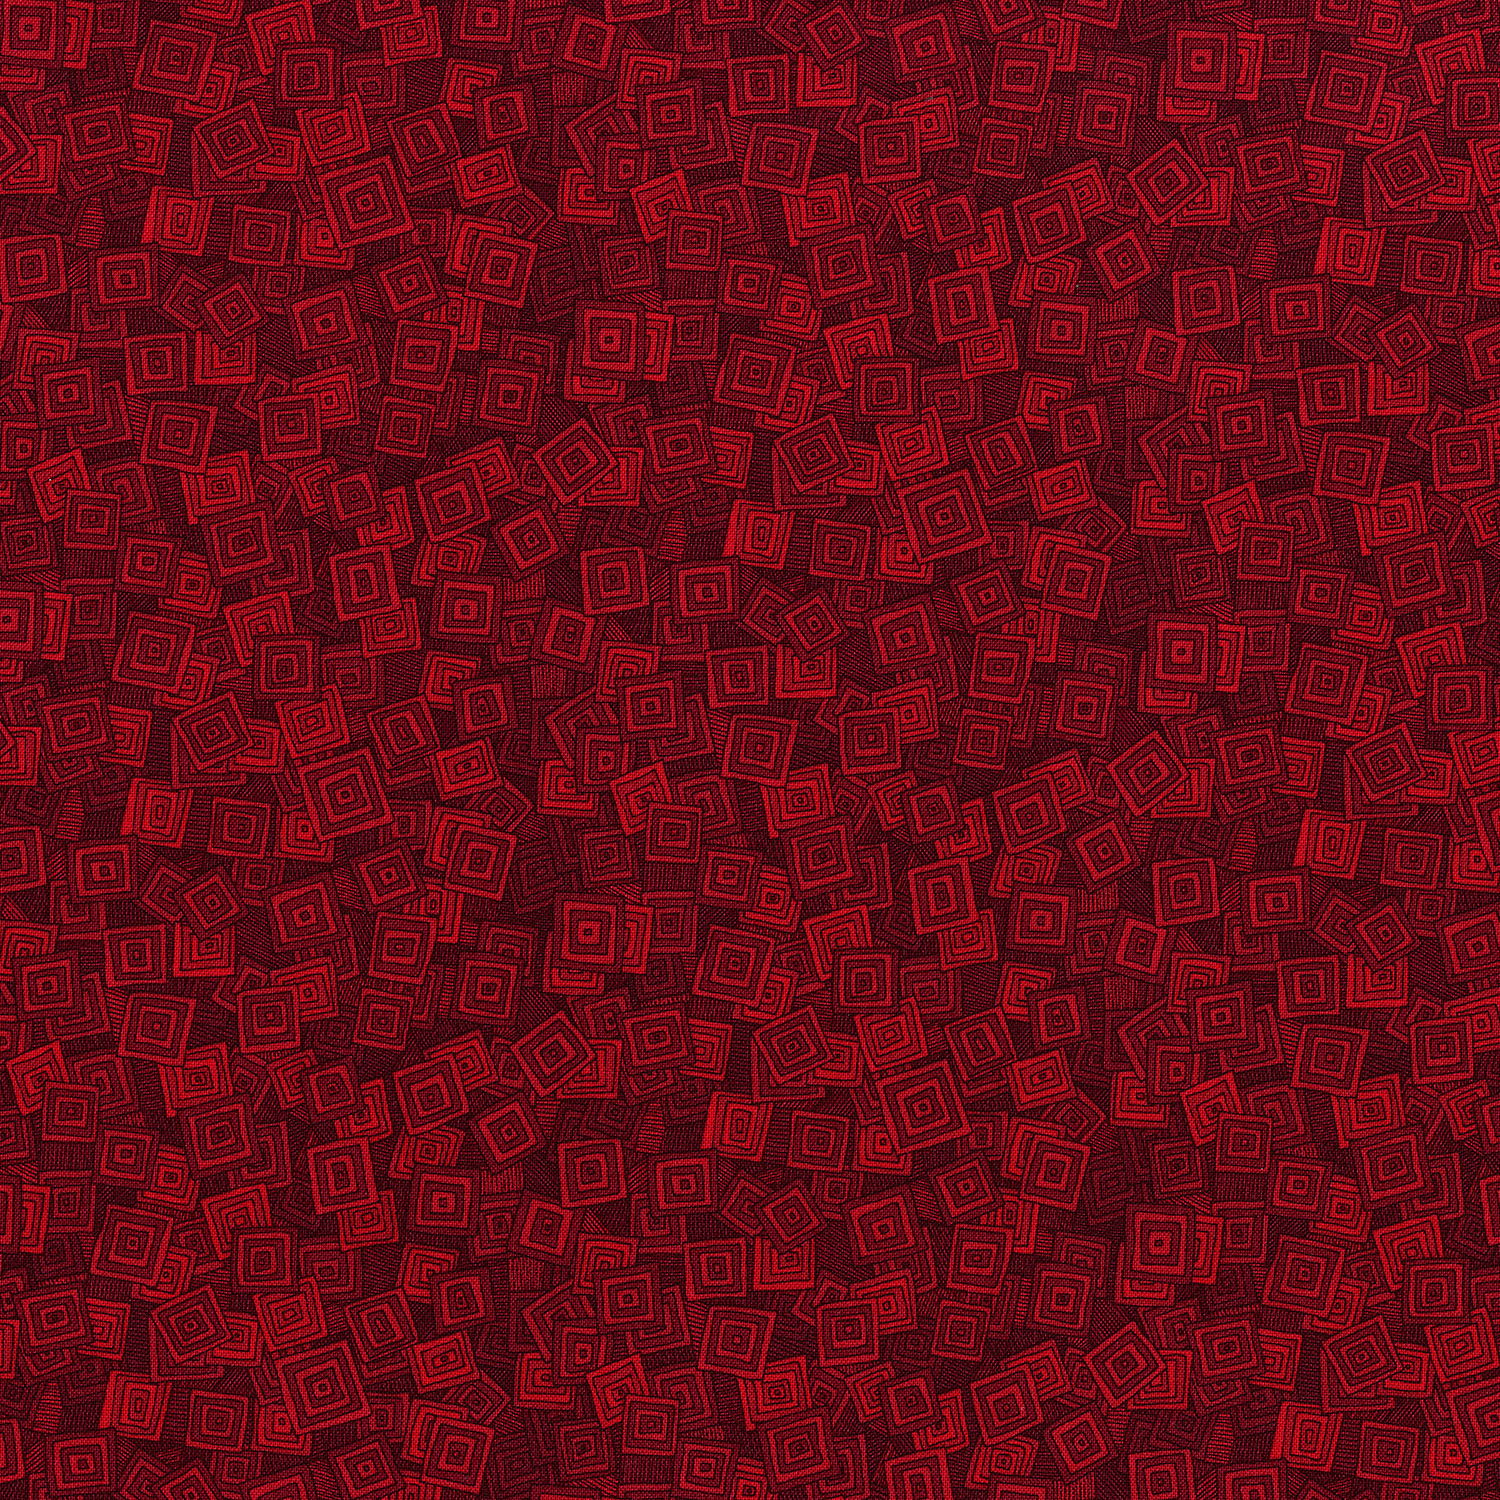 3215-005  OVERLAPPING SQUARES-SCARLET